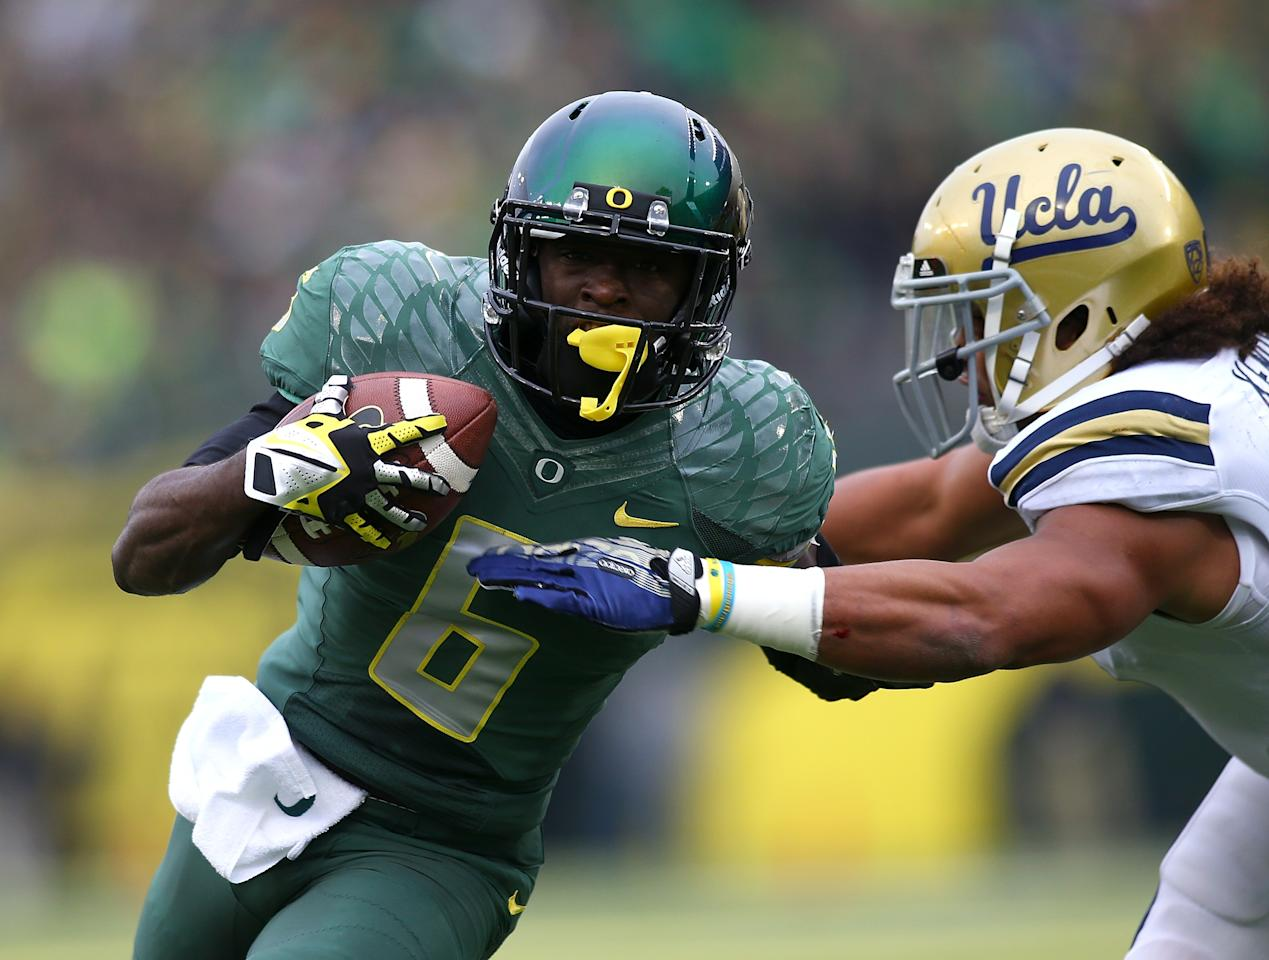 EUGENE, OR - OCTOBER 26: De'Anthony Thomas #6 of the Oregon Ducks runs the ball against Eric Kendricks #6 of the UCLA Bruins on October 26, 2013 at the Autzen Stadium in Eugene, Oregon. (Photo by Jonathan Ferrey/Getty Images)